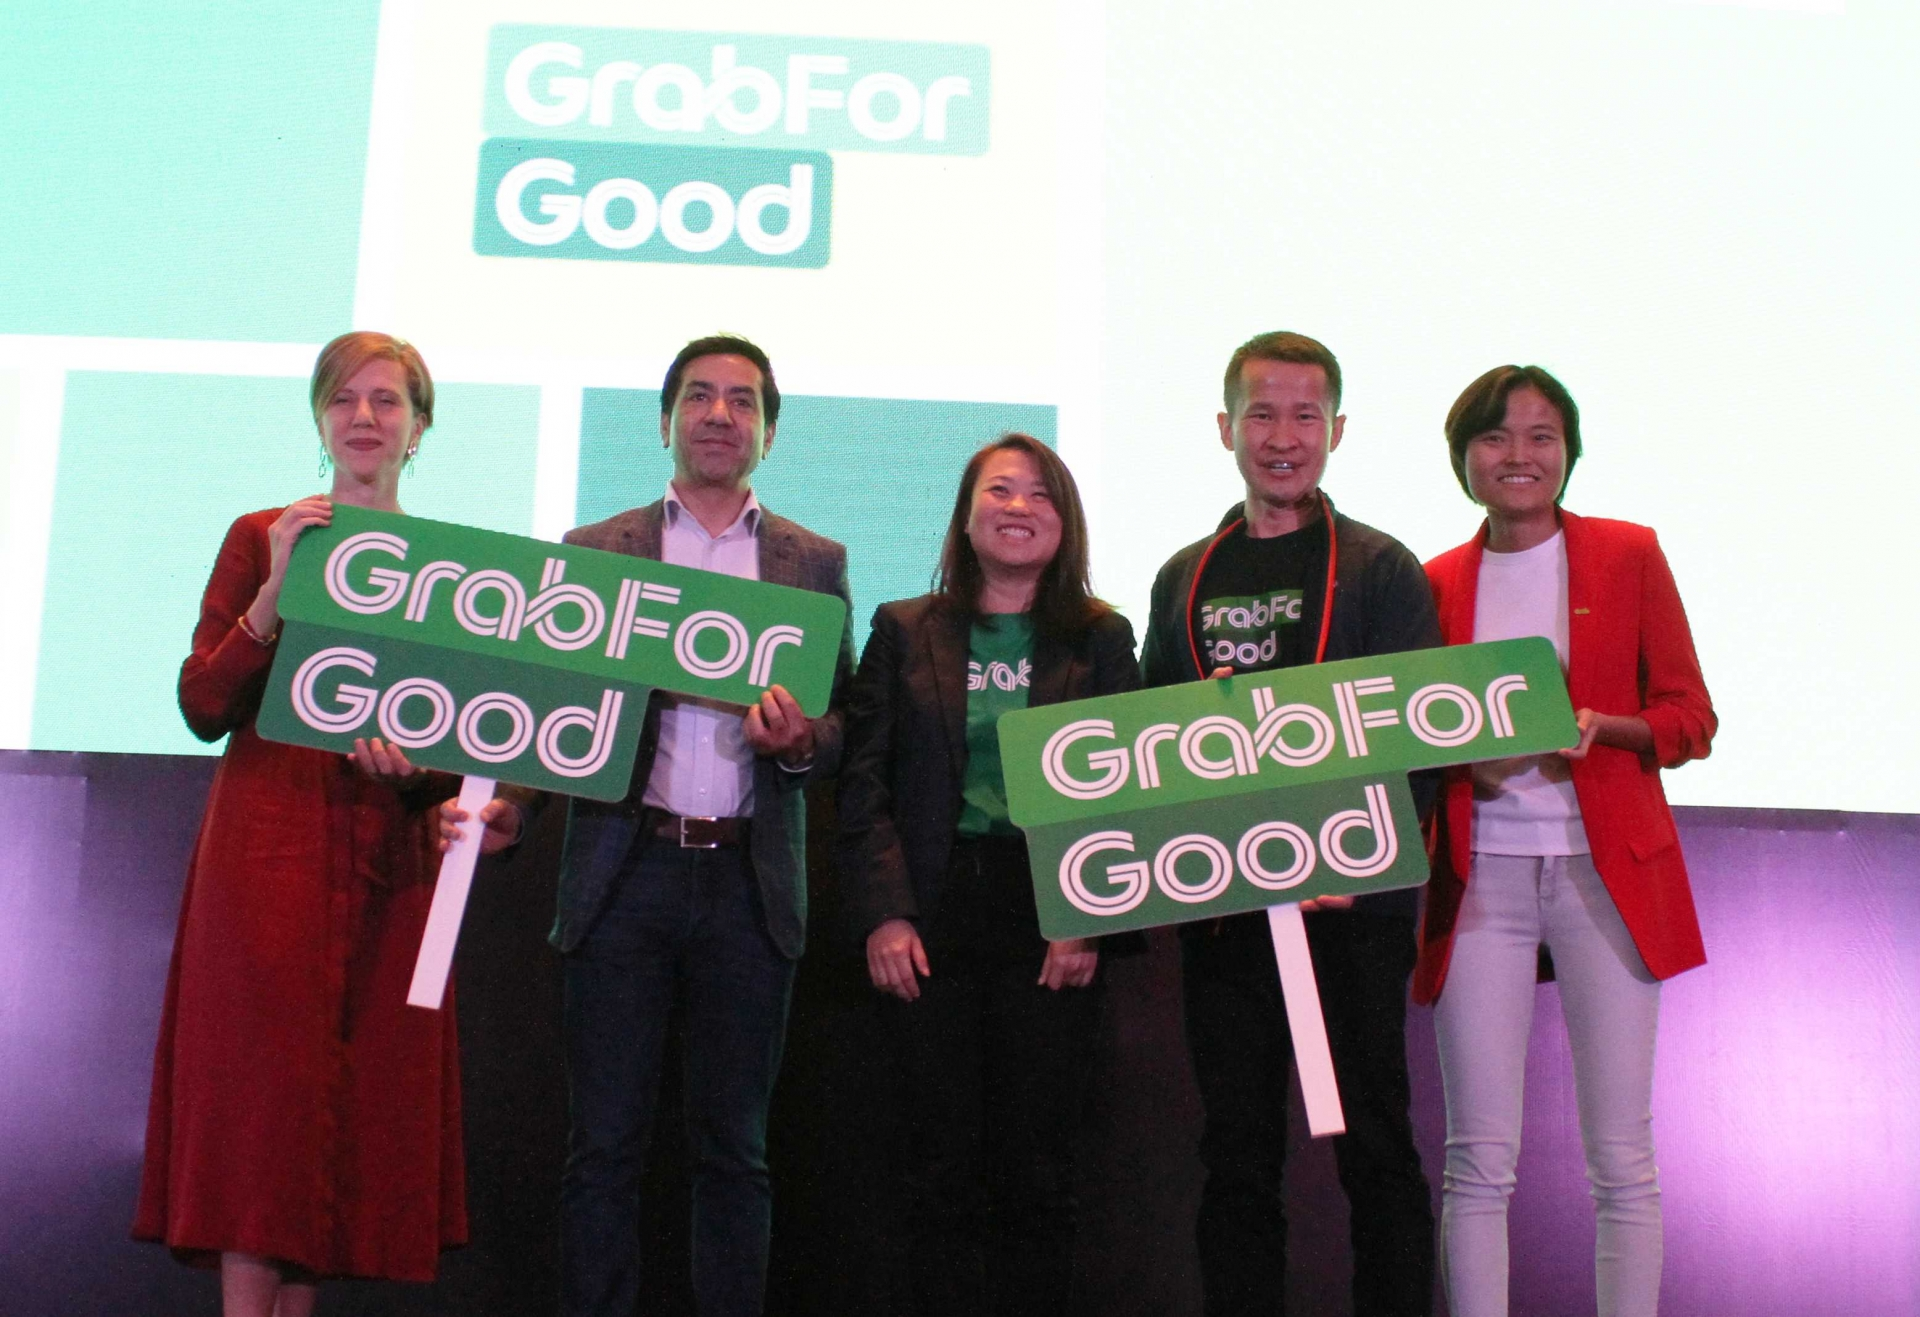 grab sets 2025 goals to use tech for good in southeast asia